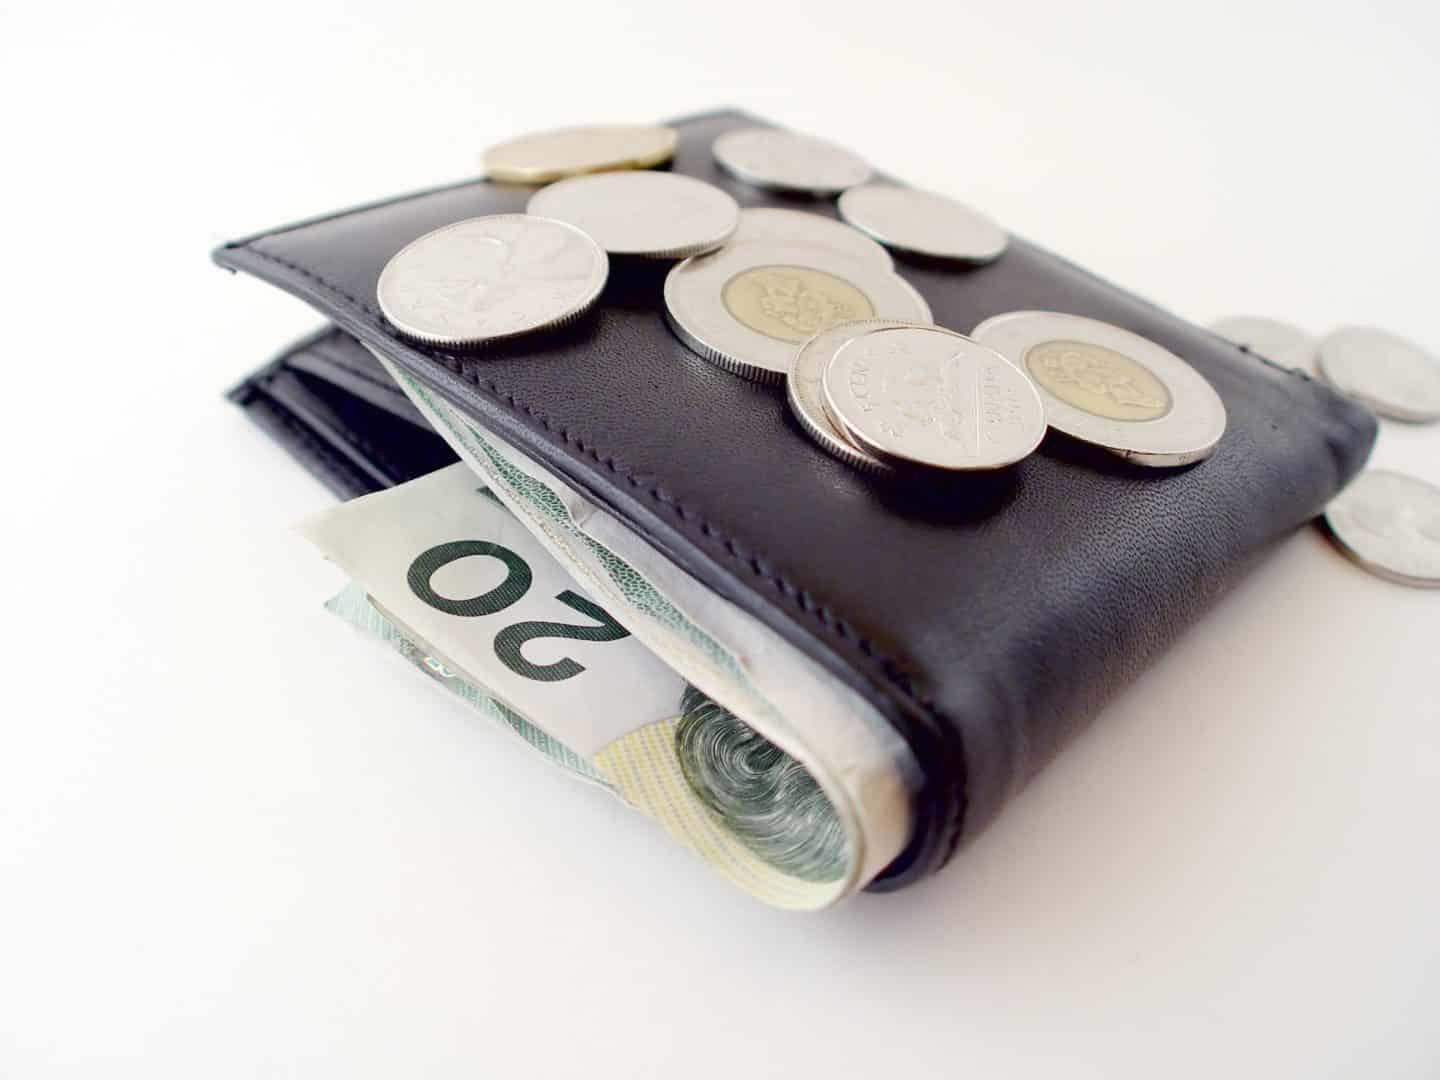 Wallet with coins on top